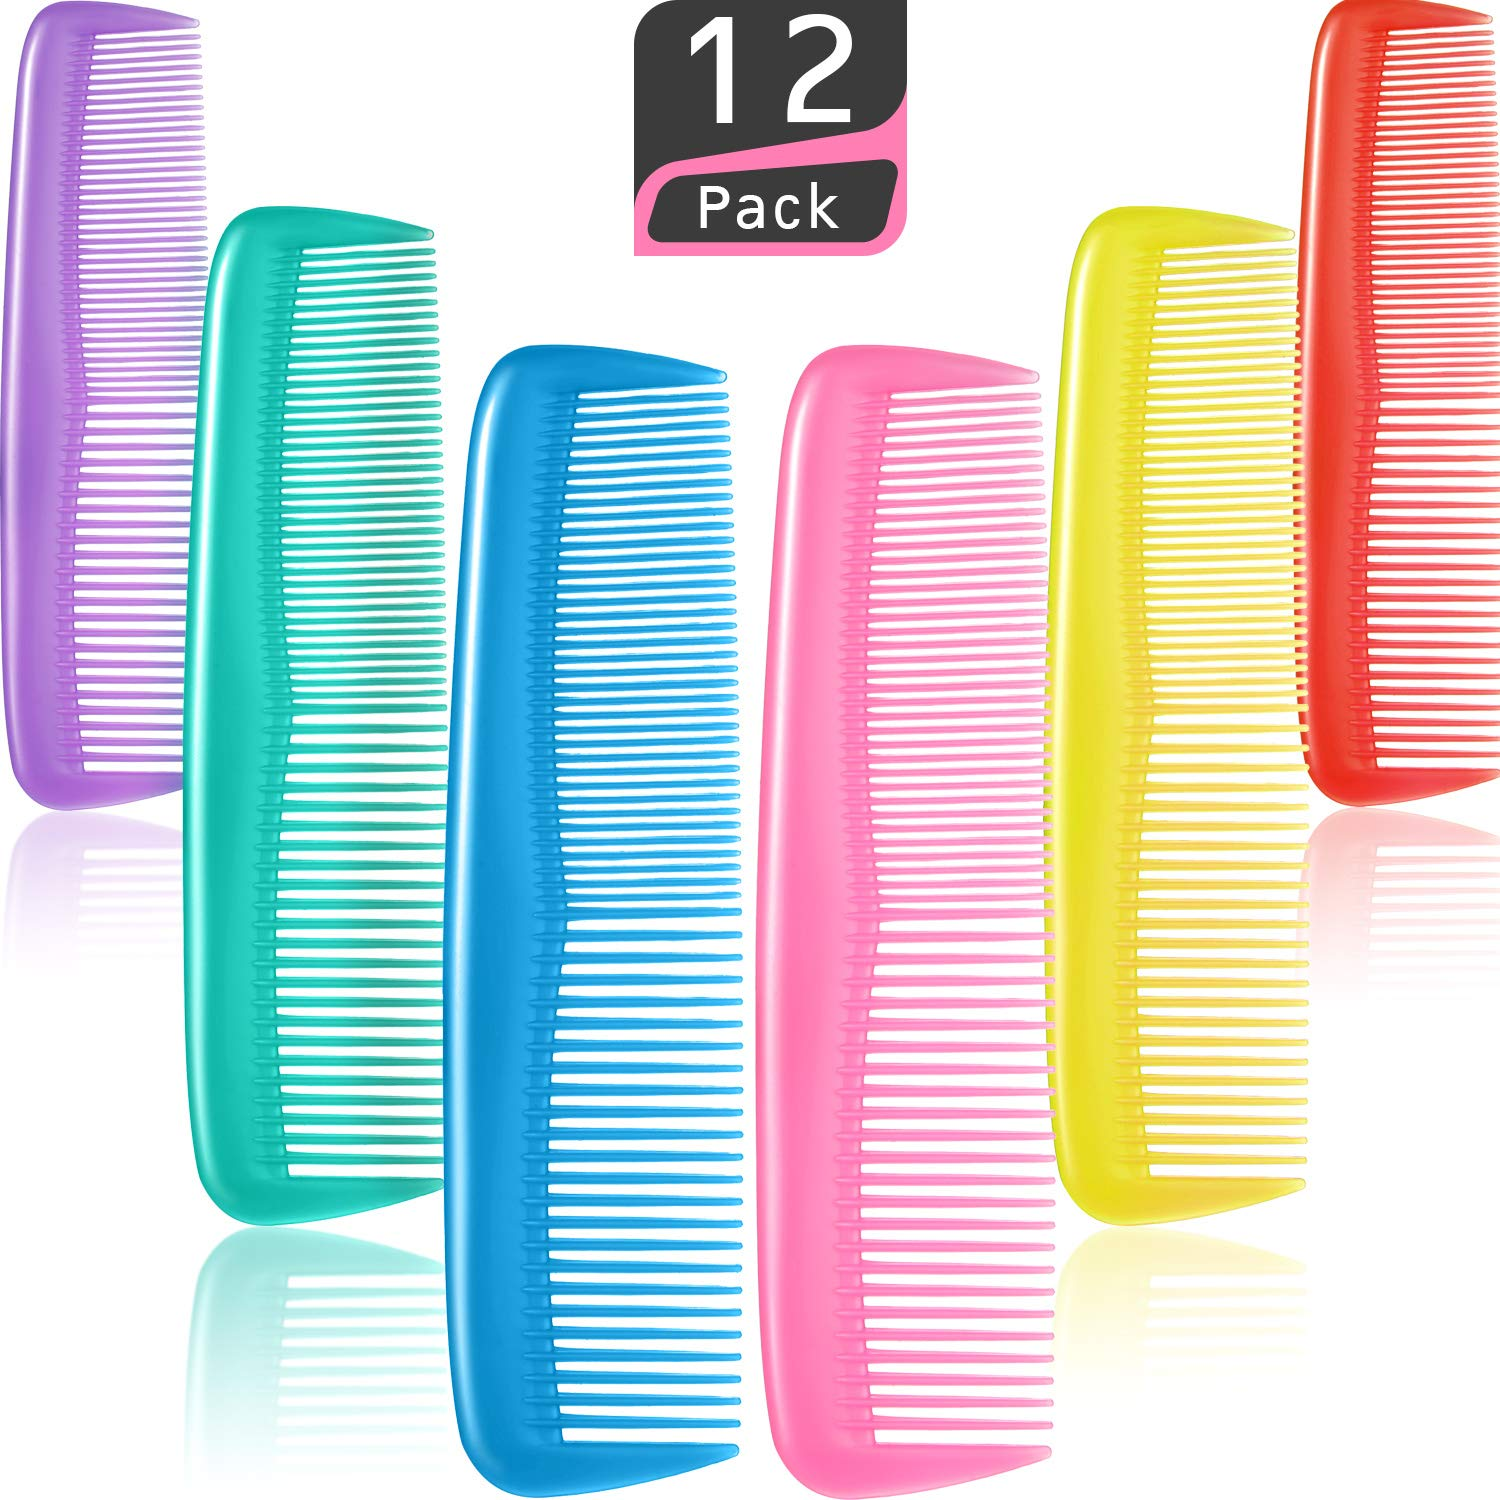 12 Pieces Colorful Hair Combs Set, Hair Combs Set, Hair Combs for Women and Men, Colorful Coarse, Fine Dressing Comb (12 Pieces)